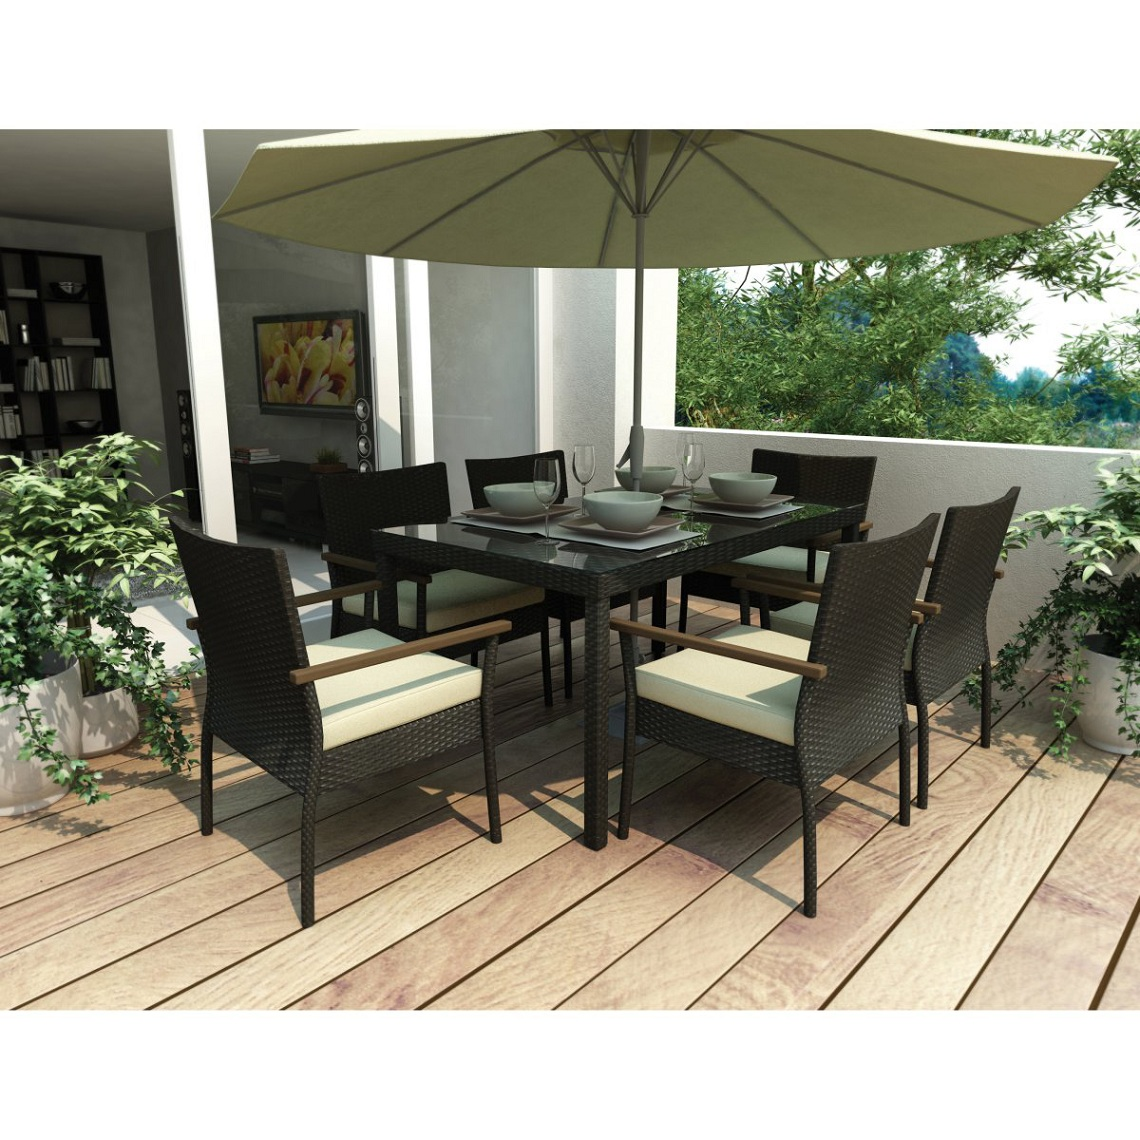 patio furniture sets photo - 4